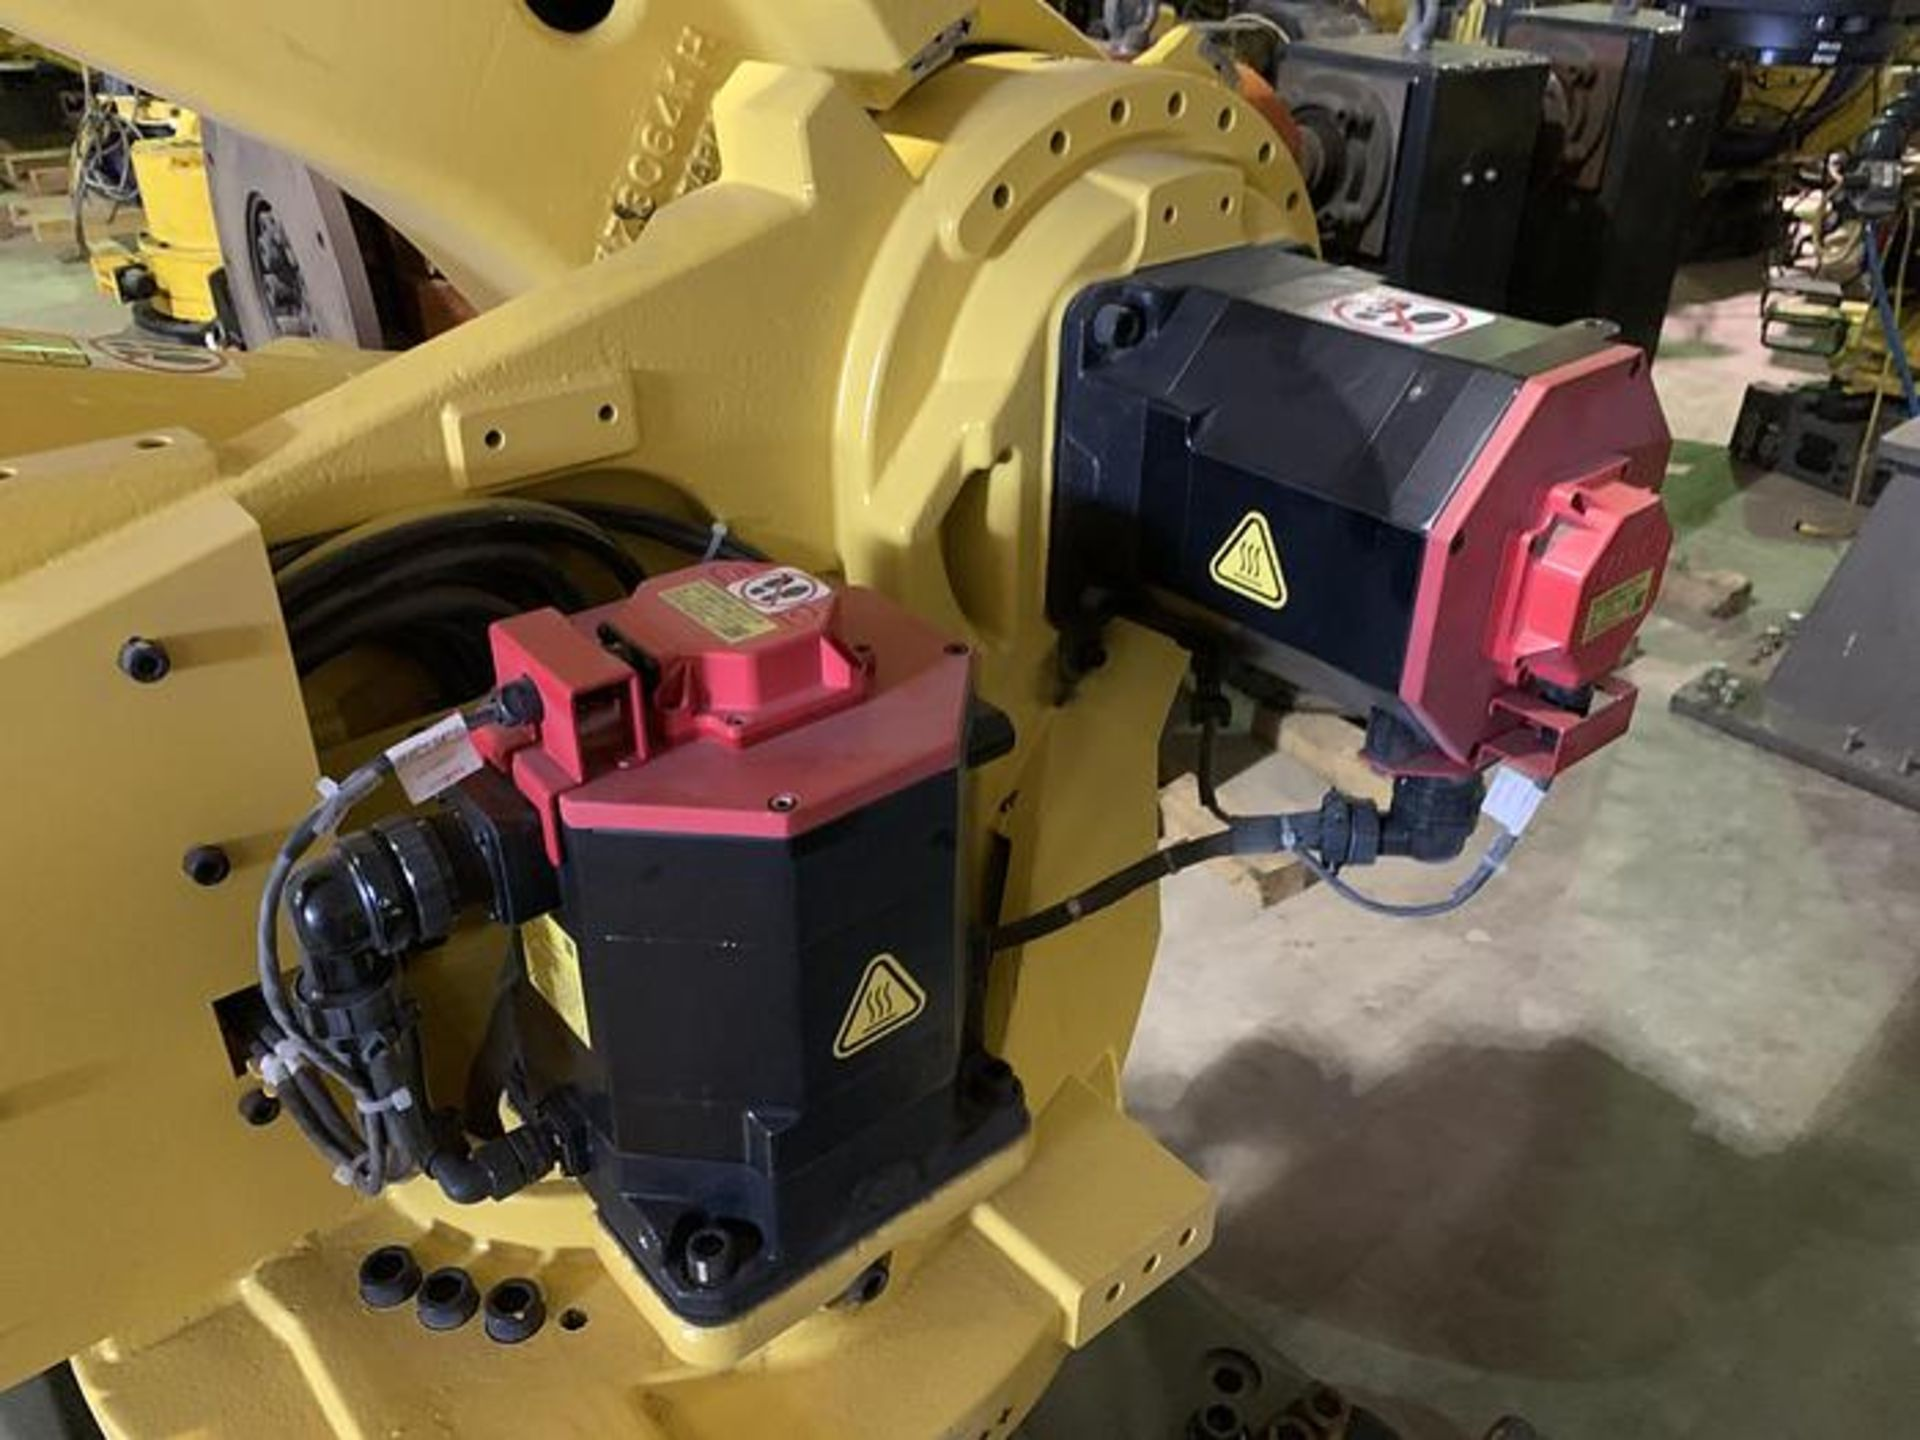 FANUC R2000iC/125L 6 AXIS CNC ROBOT WITH R30iB CONTROLLER, IR VISION, CABLES & REACH - Image 7 of 17